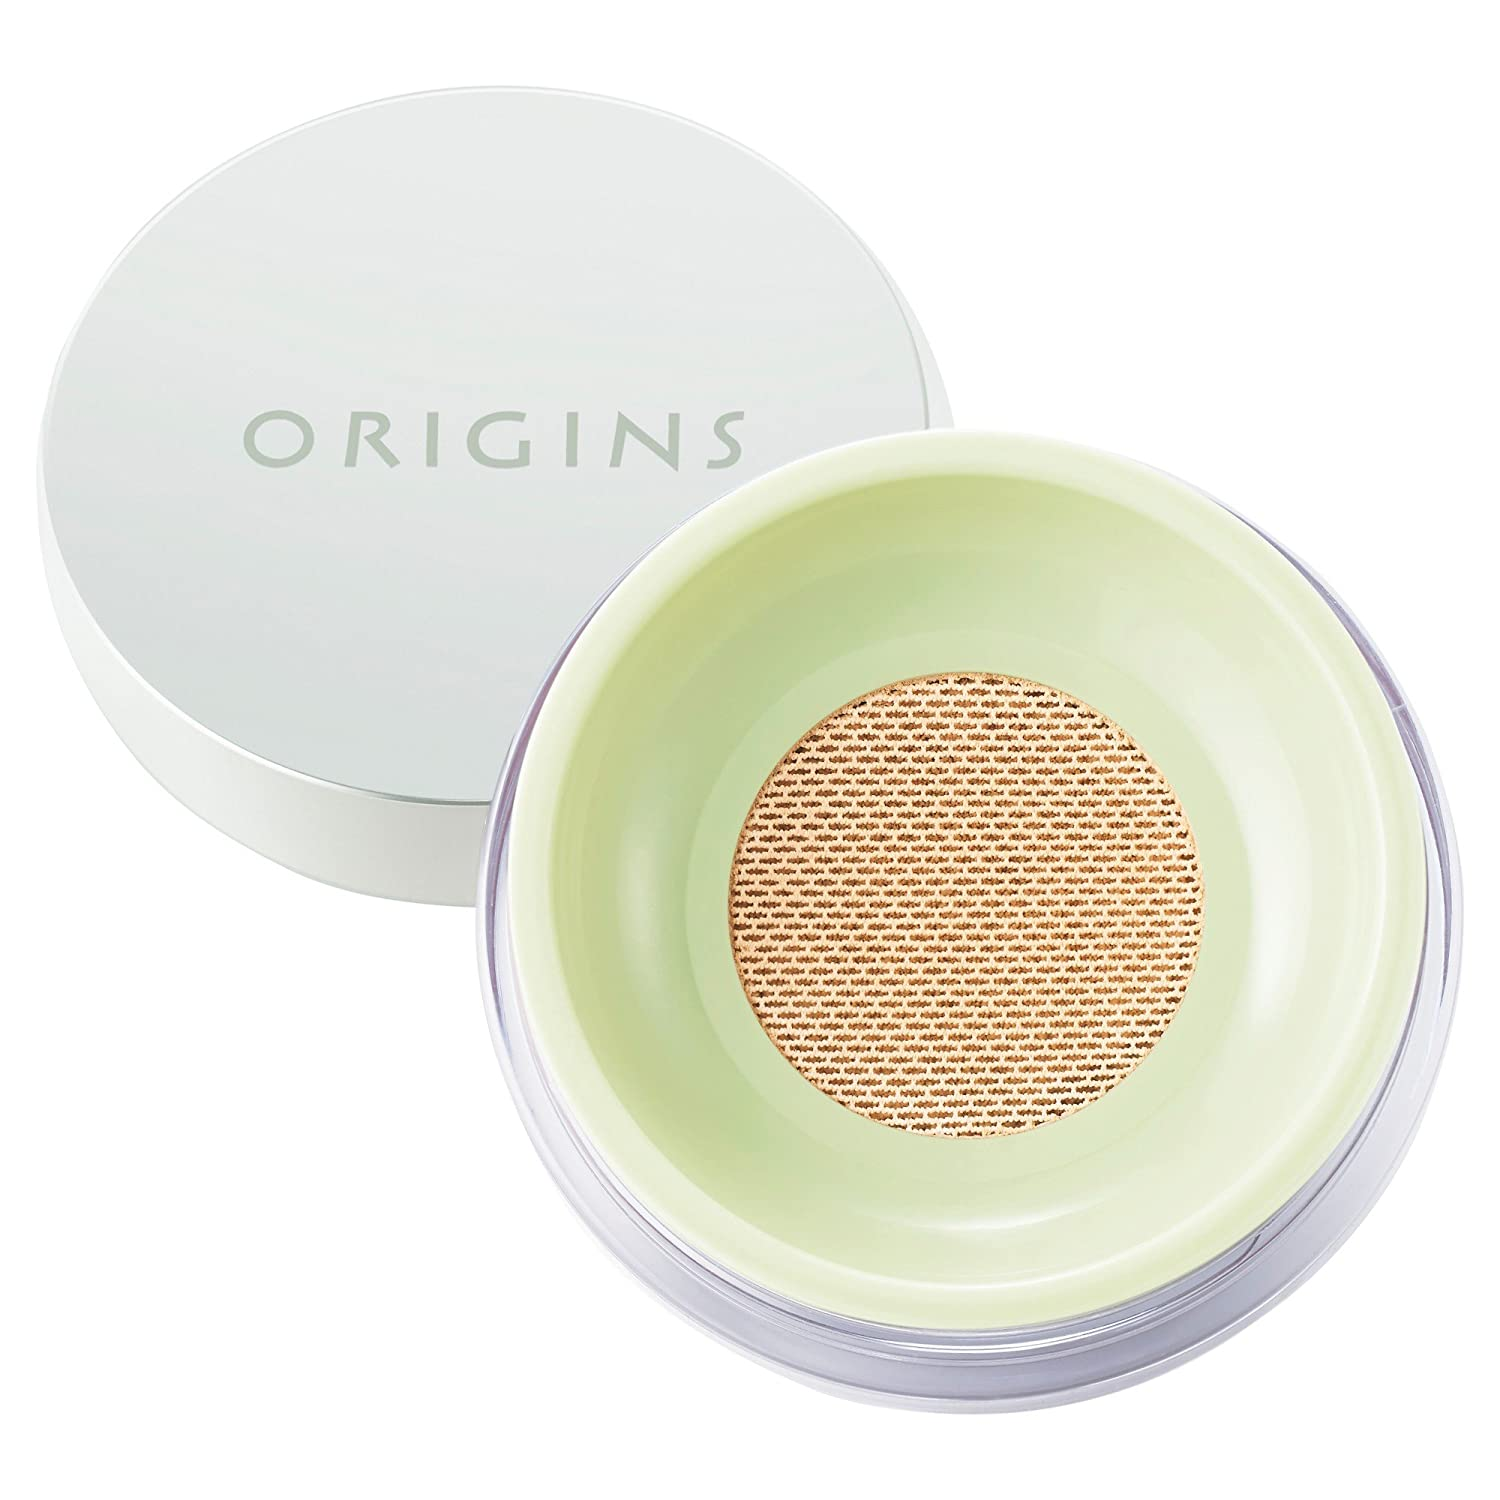 深いミネラルメイクアップをGinzing起源 (Origins) (x2) - Origins GinZing Mineral Makeup Deep (Pack of 2) [並行輸入品] B01N3S6W5A